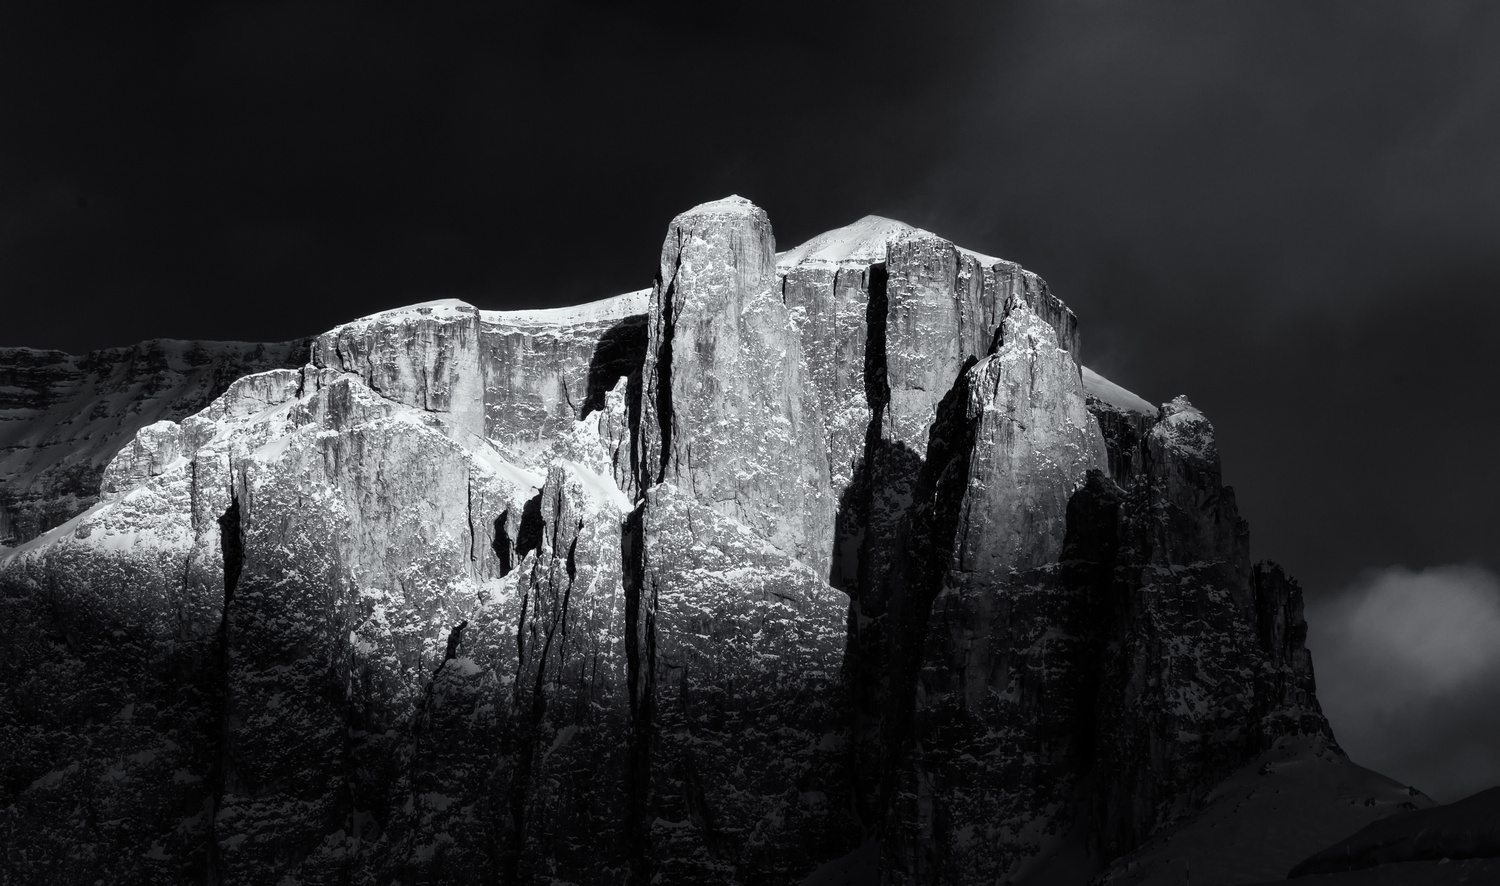 Sella towers by Thomas Welte